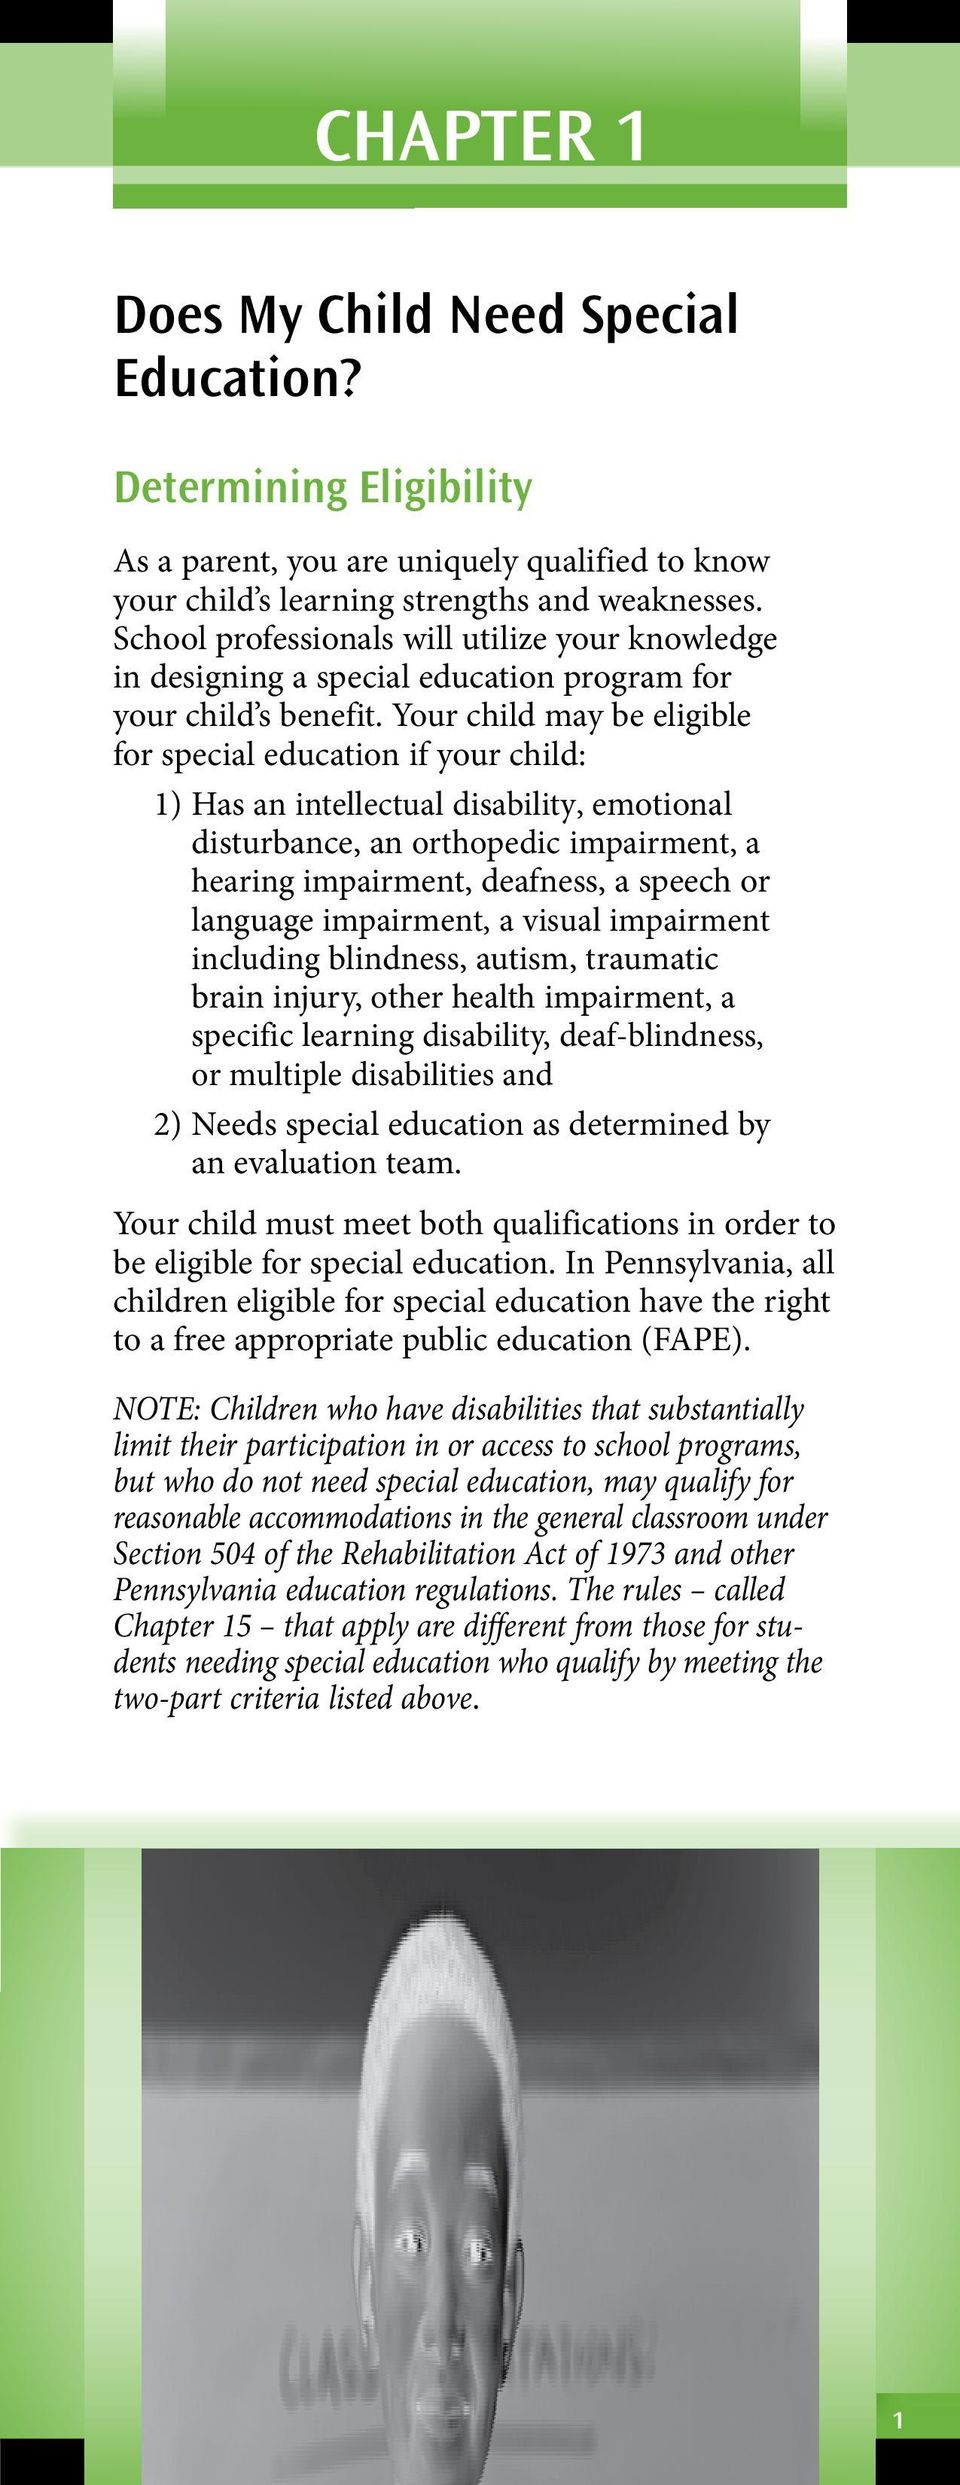 Your child may be eligible for special education if your child: 1) Has an intellectual disability, emotional disturbance, an orthopedic impairment, a hearing impairment, deafness, a speech or